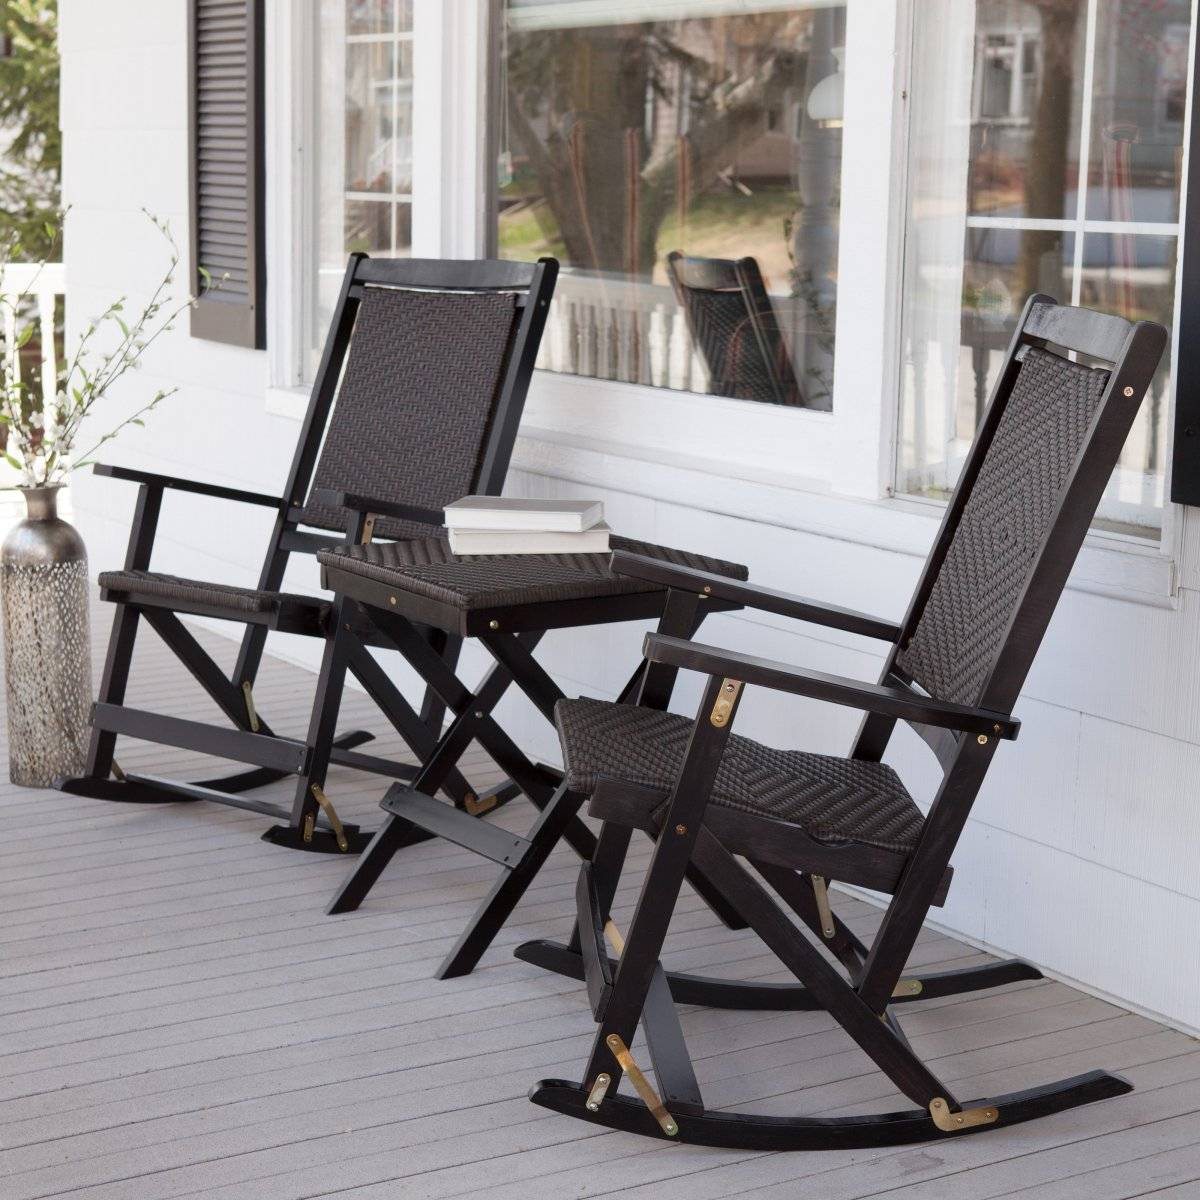 outdoor rocking chairs for tall man 87 great diy decorating tips your porch and patio